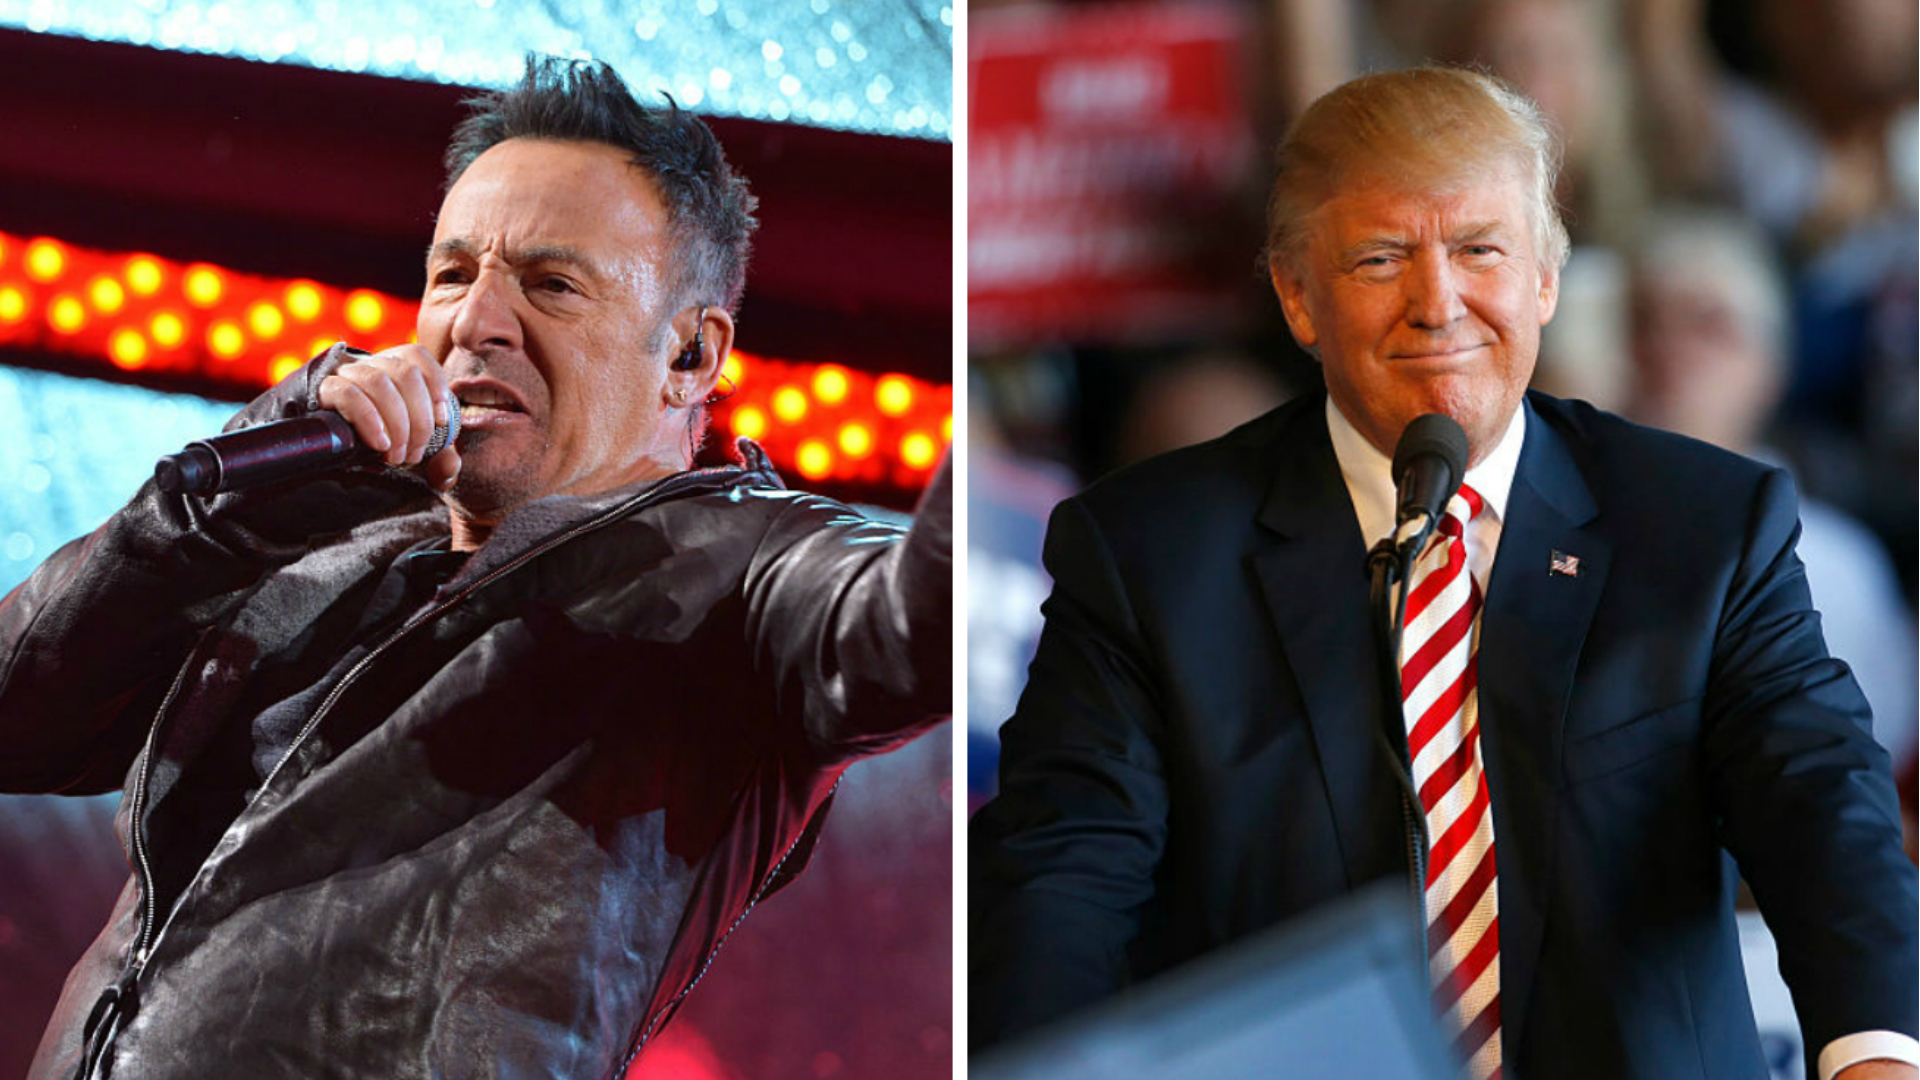 Bruce Springsteen hates Donald Trump